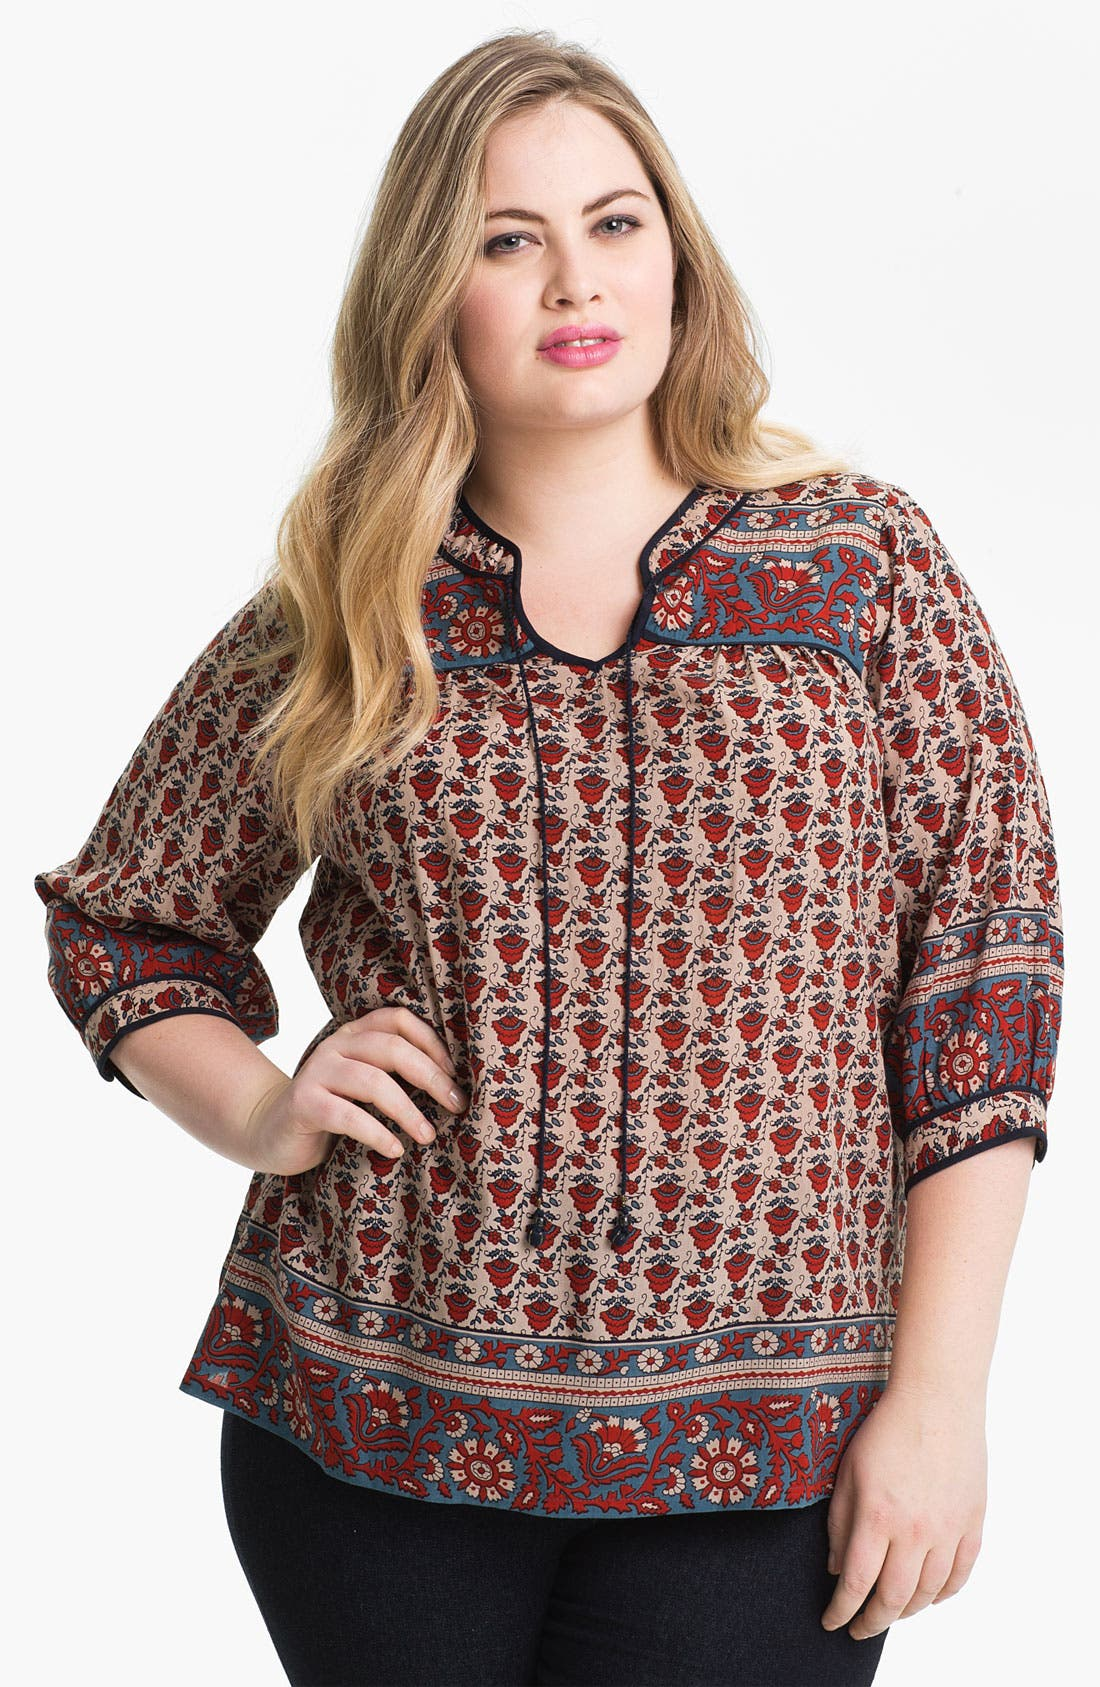 Alternate Image 1 Selected - Lucky Brand Print Peasant Top (Plus)